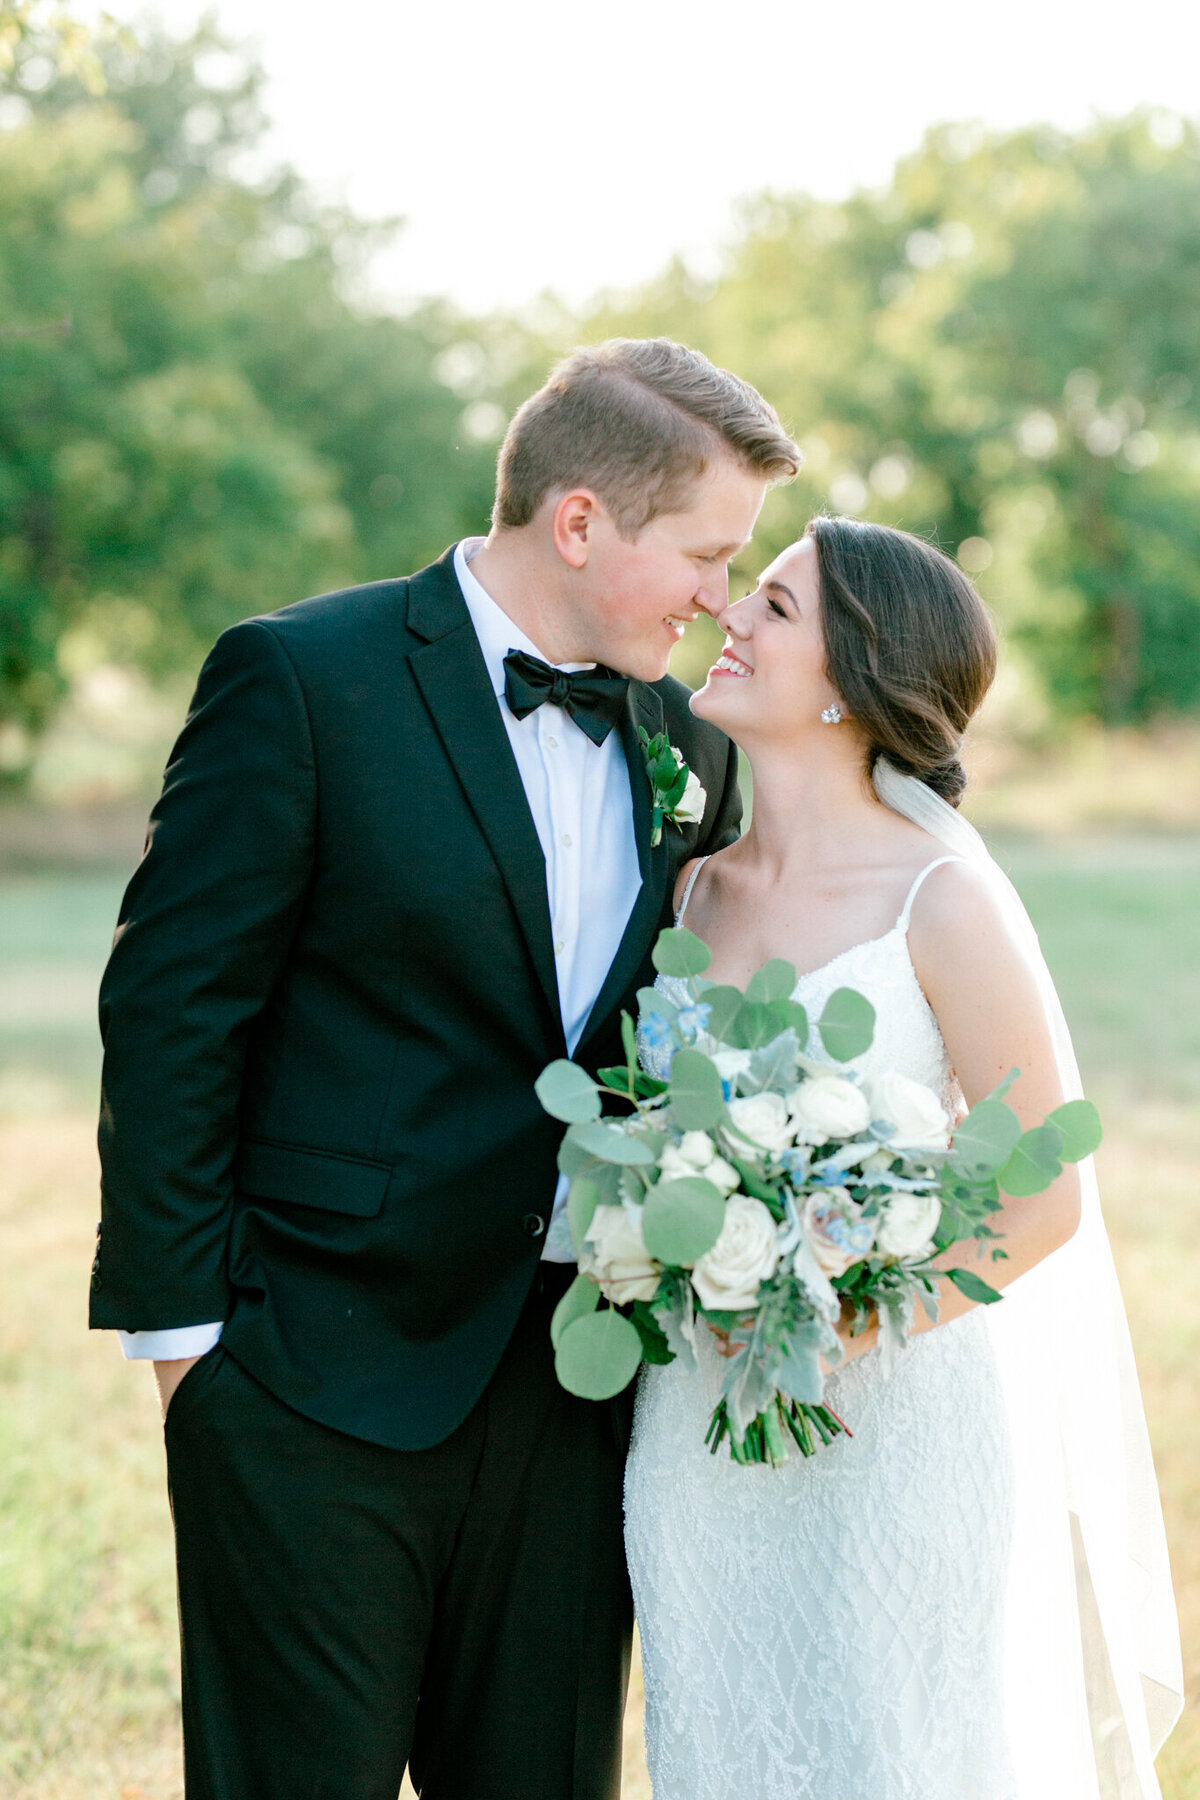 Anna & Billy's Wedding at The Nest at Ruth Farms | Dallas Wedding Photographer | Sami Kathryn Photography-160